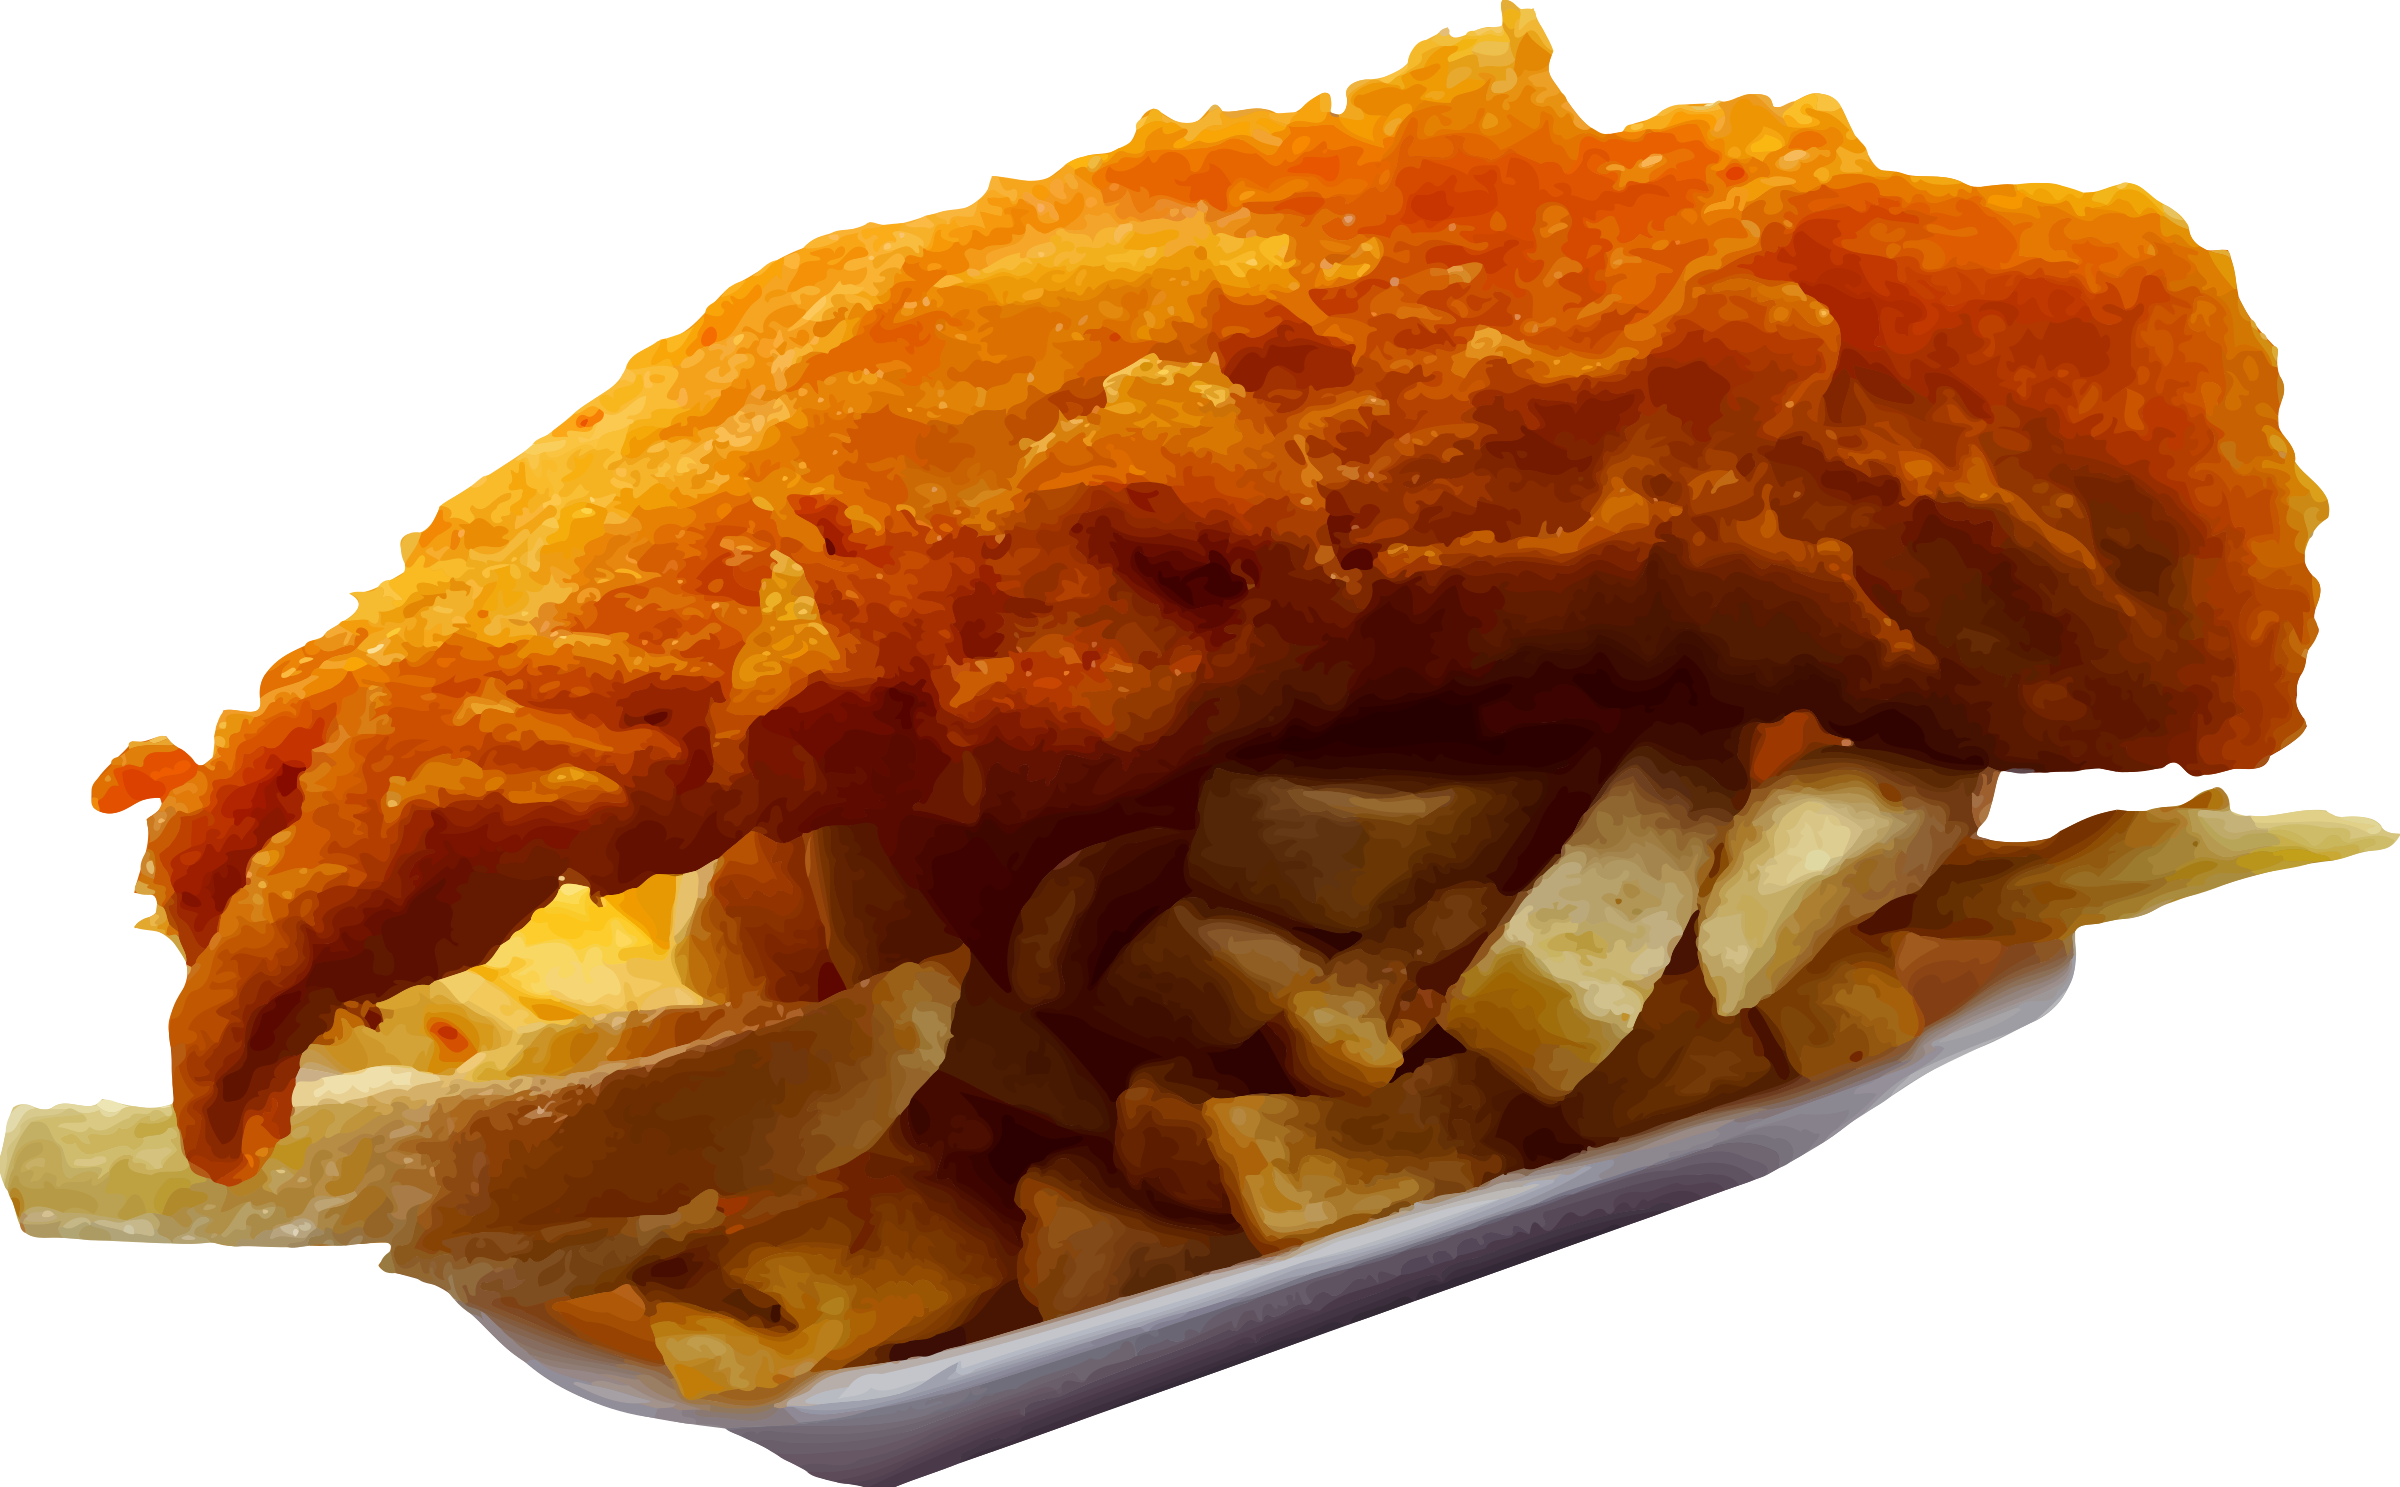 Fish and Chips vector clipart image.